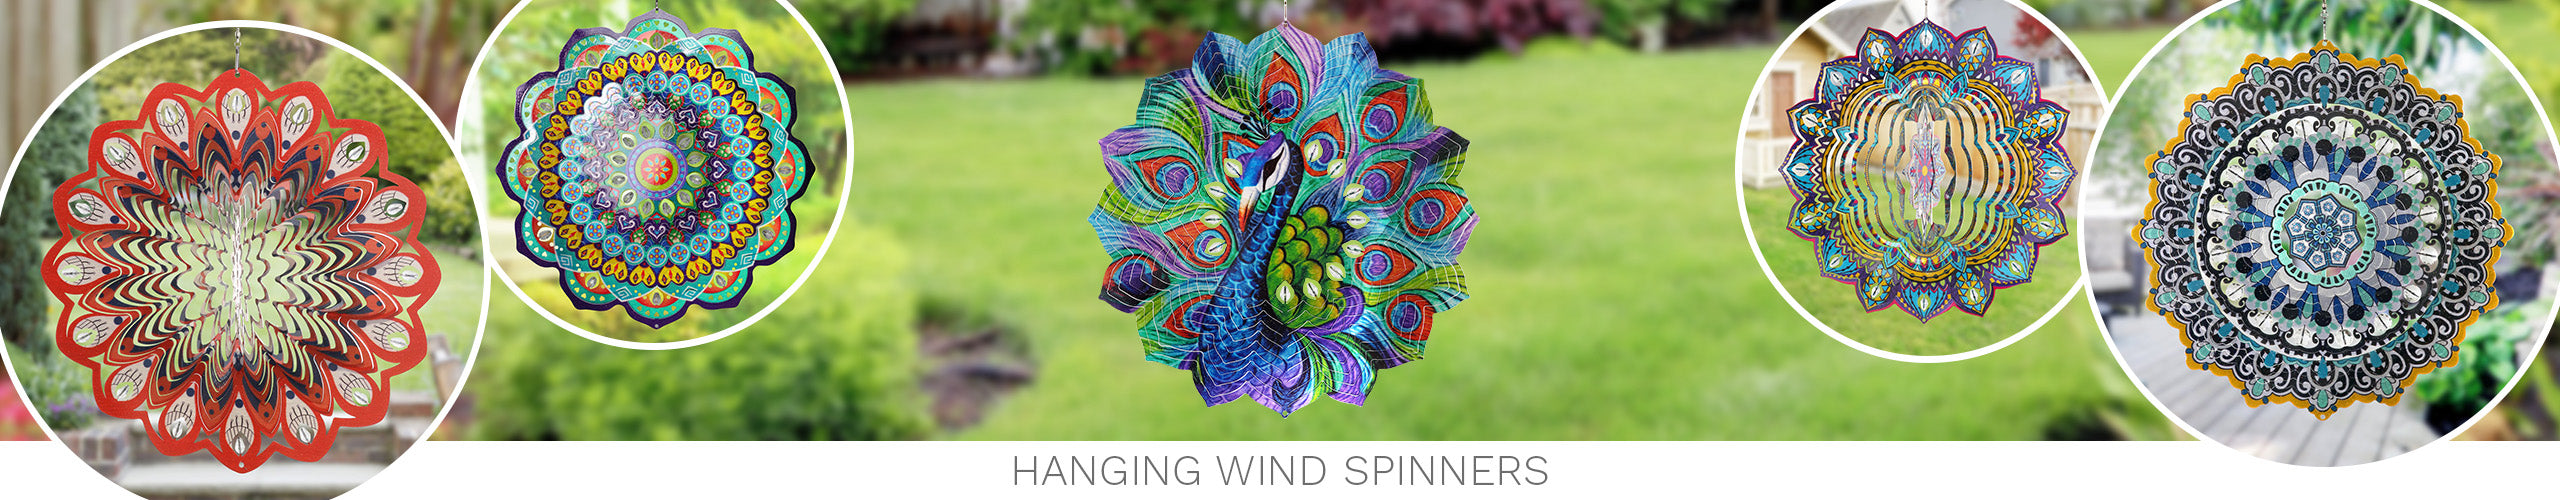 Hanging Wind Spinners